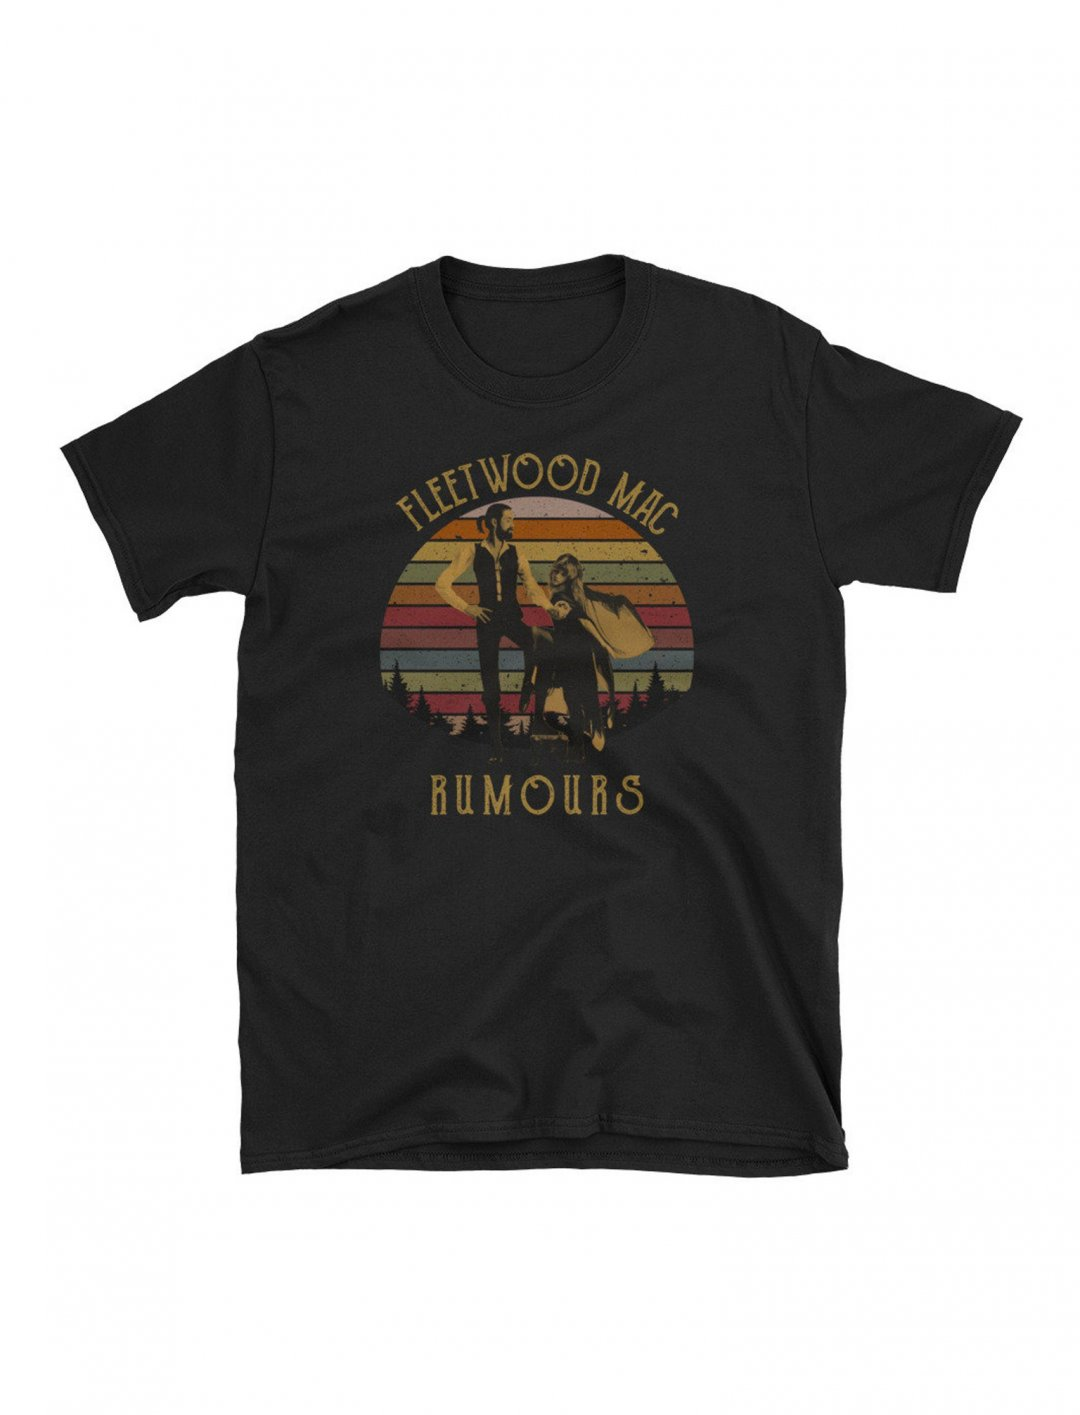 "Fleetwood Mac T-shirt {""id"":5,""product_section_id"":1,""name"":""Clothing"",""order"":5} WhiteRabbitShopUS"